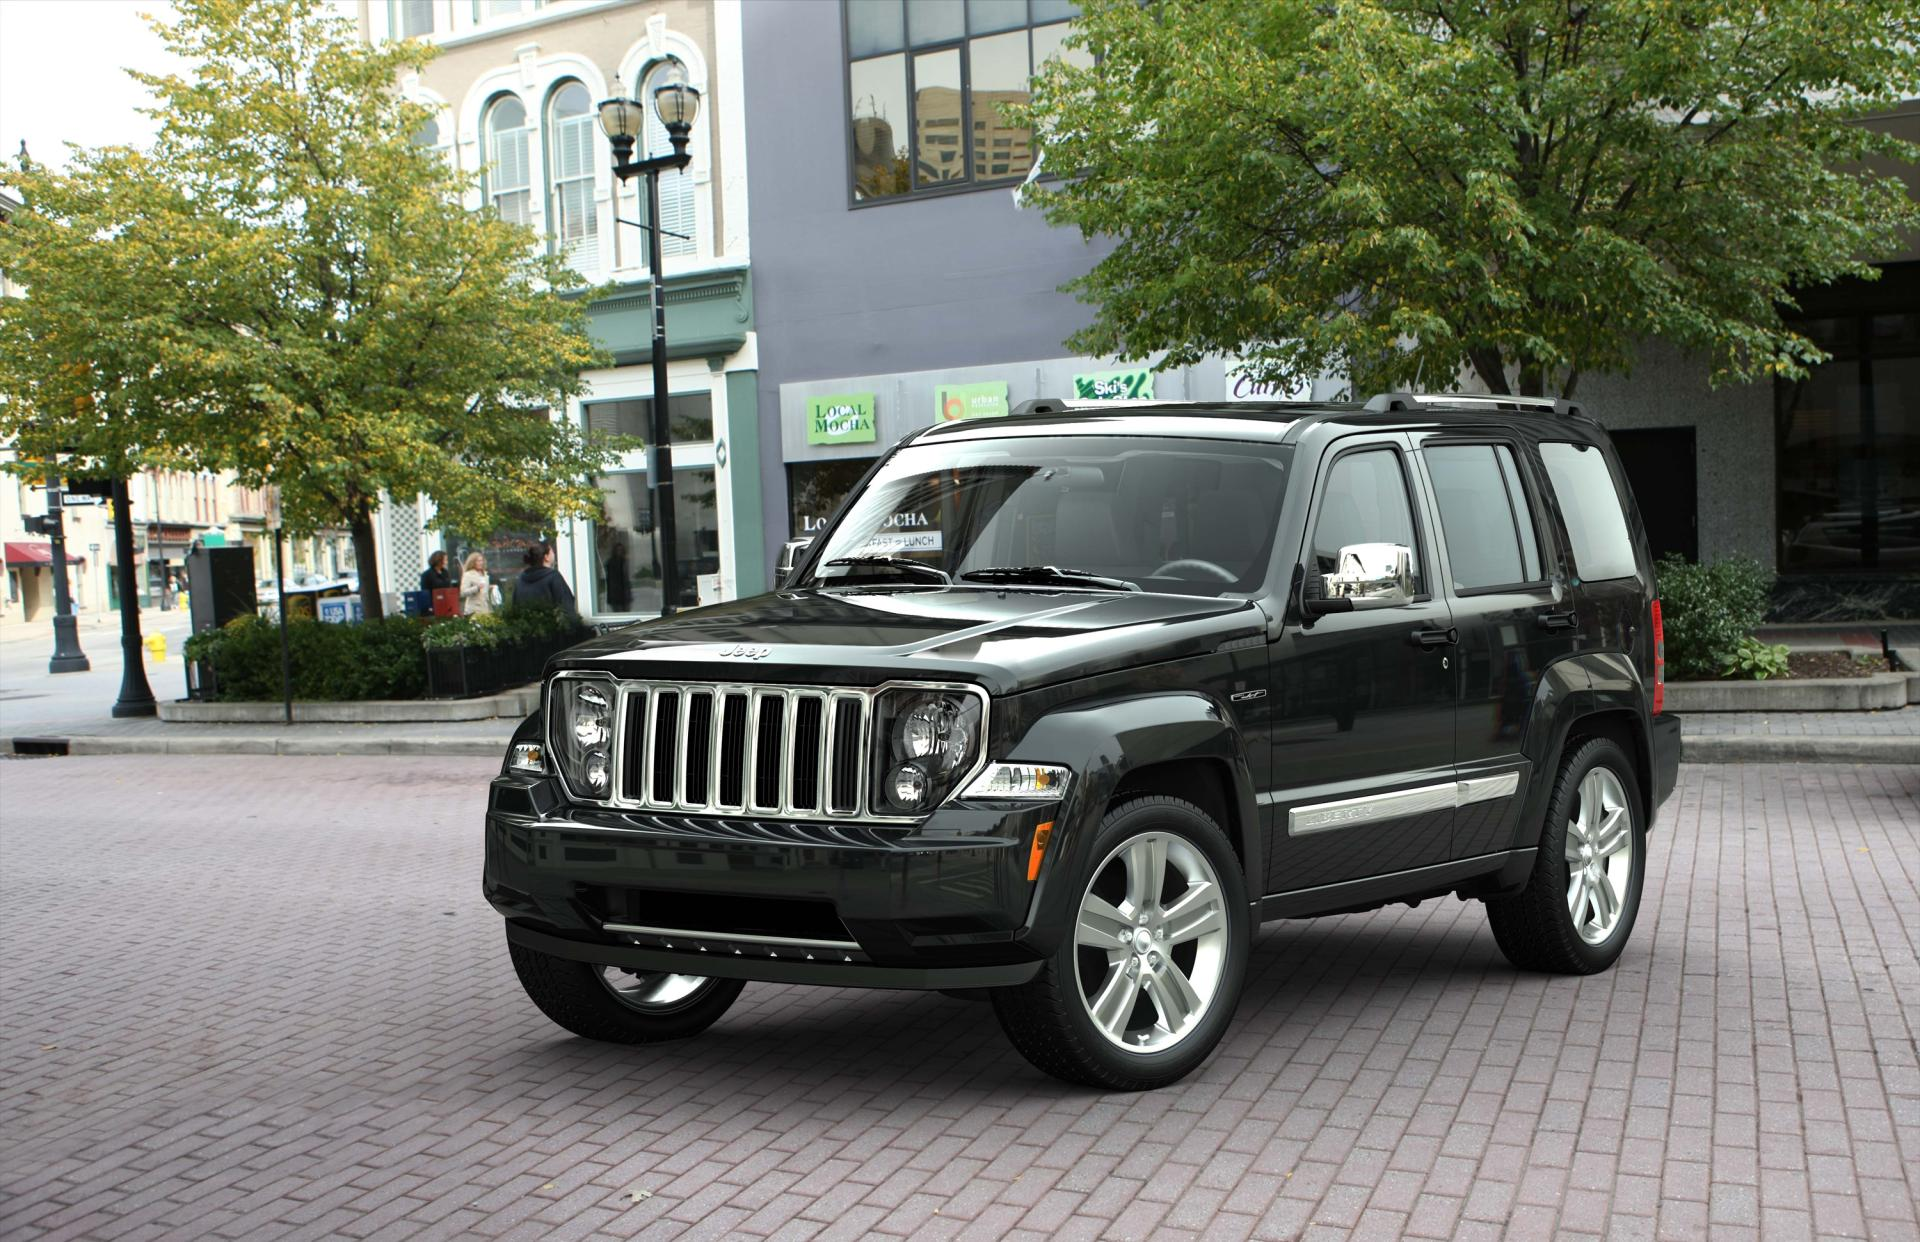 2008 Jeep Liberty For Sale >> 2012 Jeep Liberty News and Information | conceptcarz.com